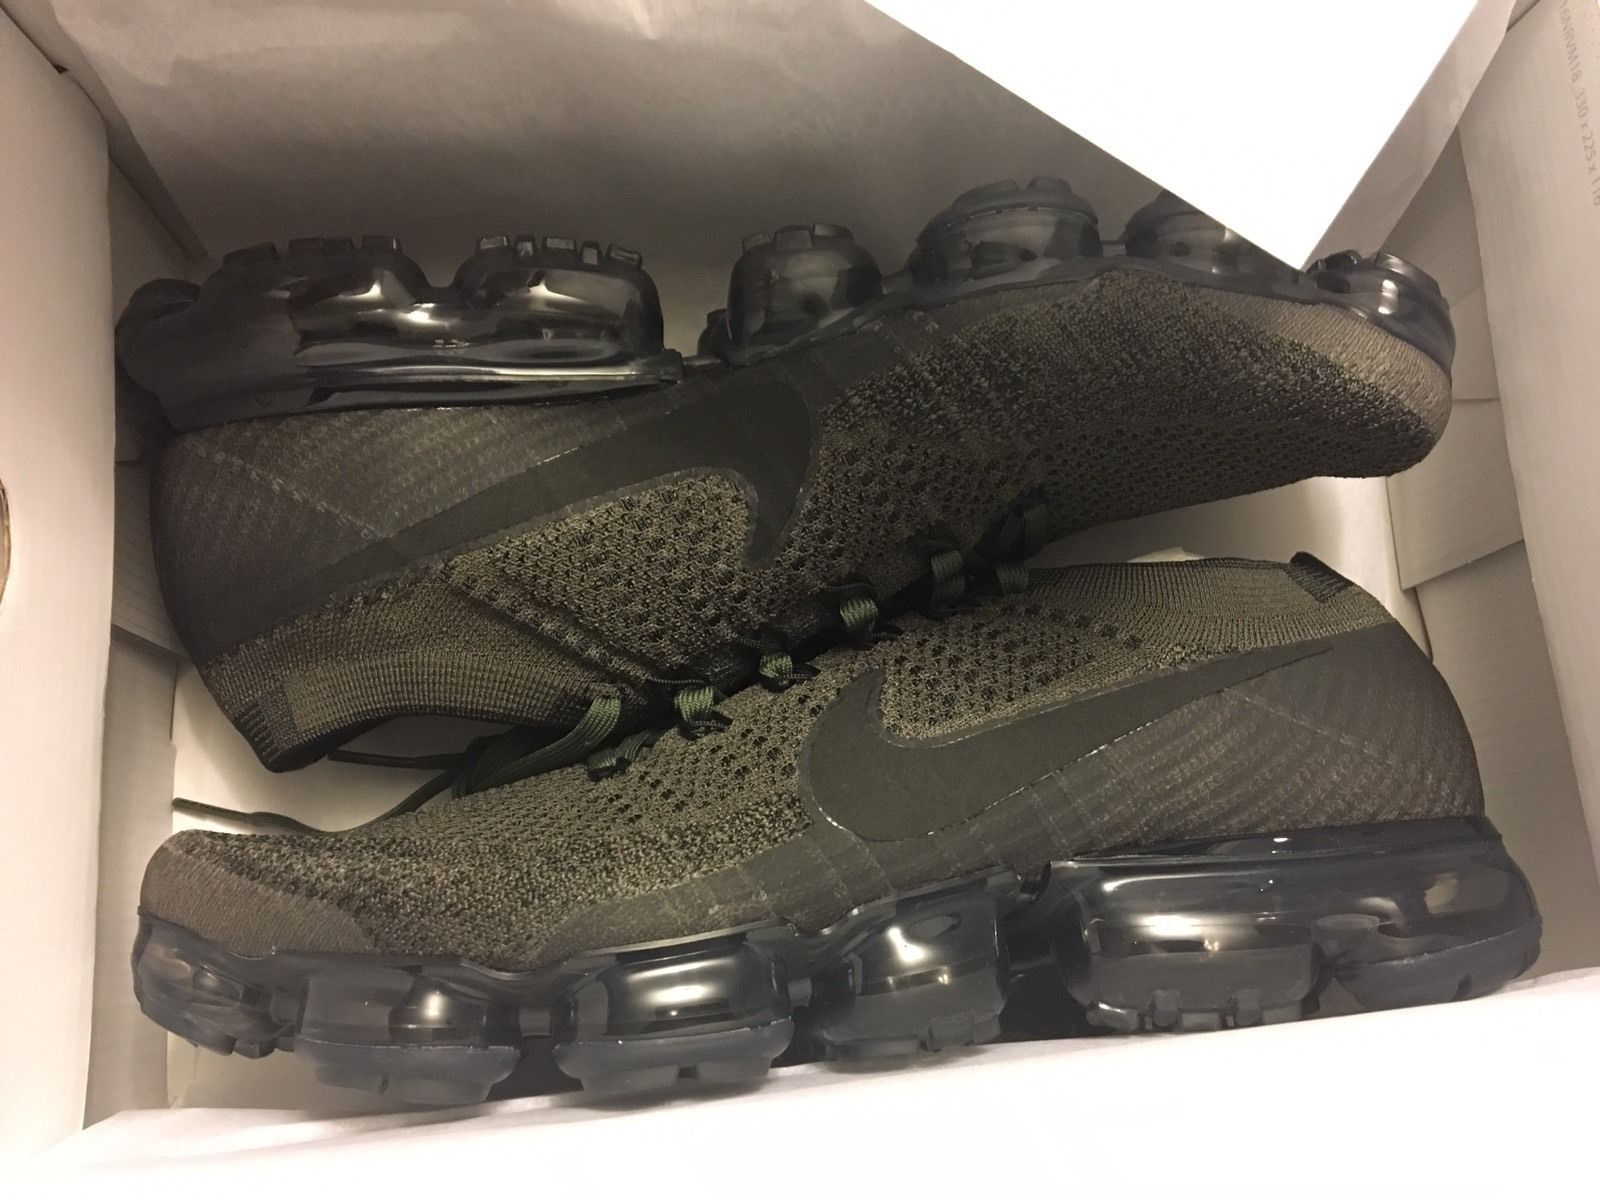 best supplier really comfortable good service Nike Flyknit Vapormax Mens Size 11.5 Cargo Khaki Olive Green ...